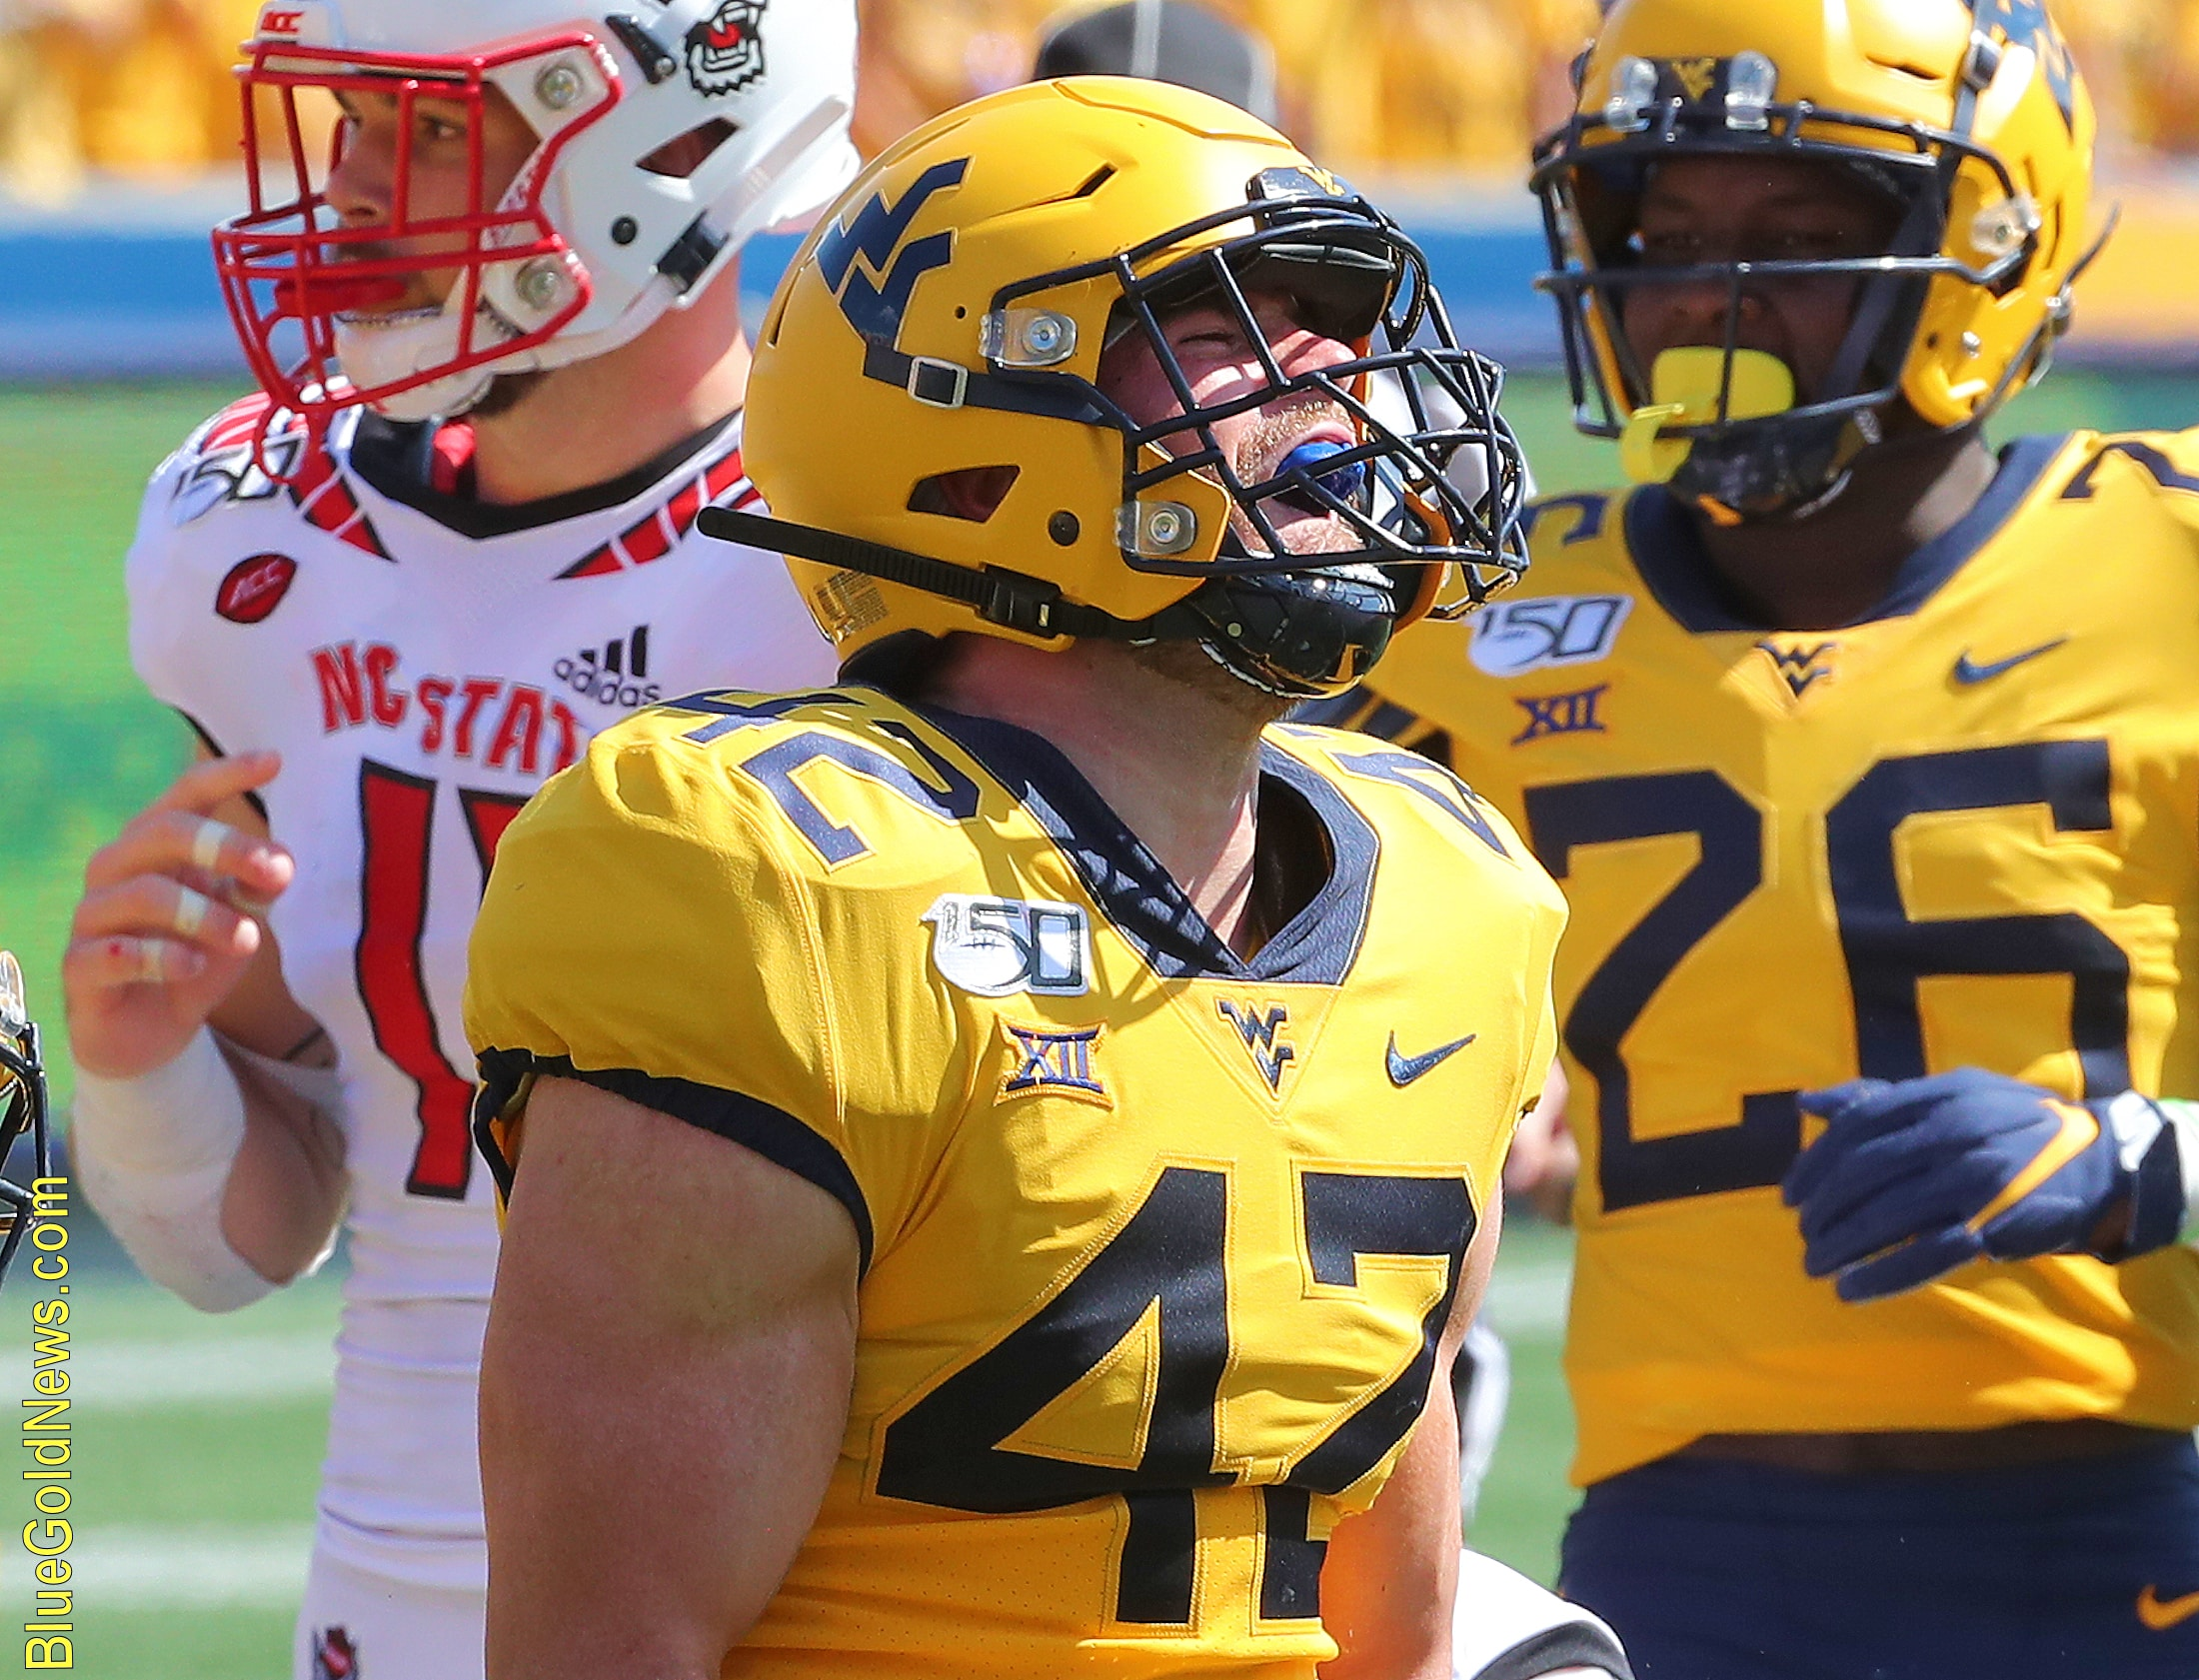 West Virginia fullback Logan Thimons celebrates his blocked punt against N.C. State